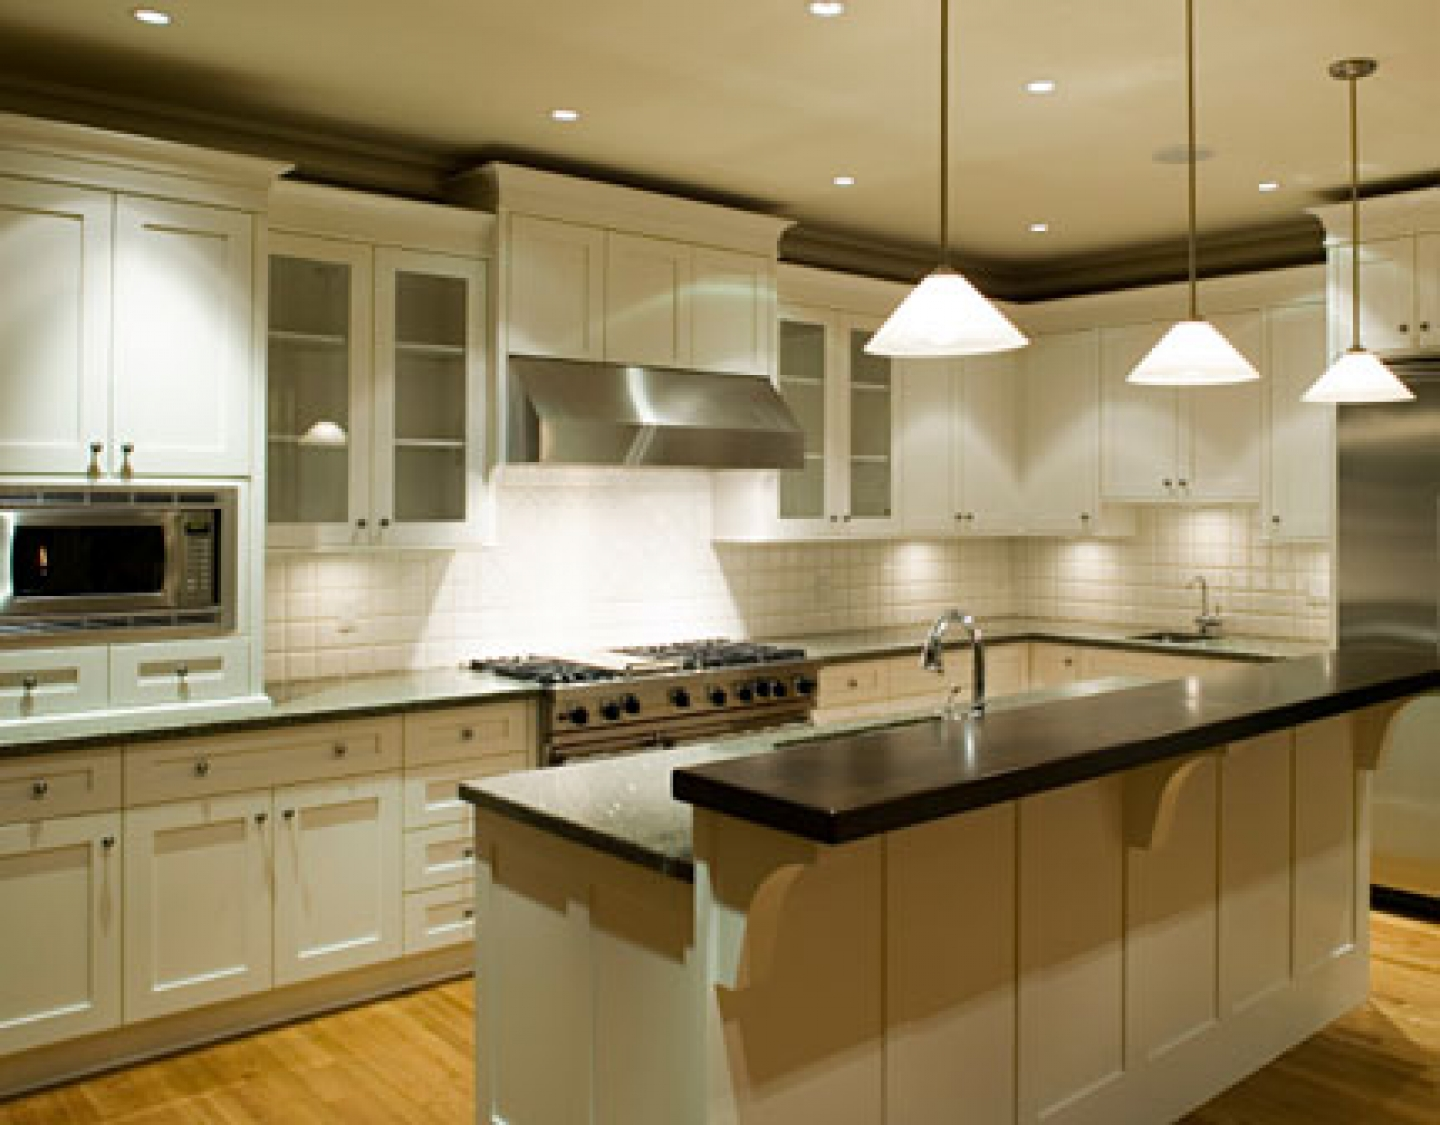 White Kitchen Cabinets Stylize Your House  Cabinets Direct. Small Kitchen Appliances Sale. Kitchen Table Island Combination. Metal Kitchen Island. White Purple Kitchen. Kitchen Units Designs For Small Kitchens. White Kitchen Faucets 4 Hole. Kitchen Tile Paint Ideas. Best Kitchen Islands For Small Spaces